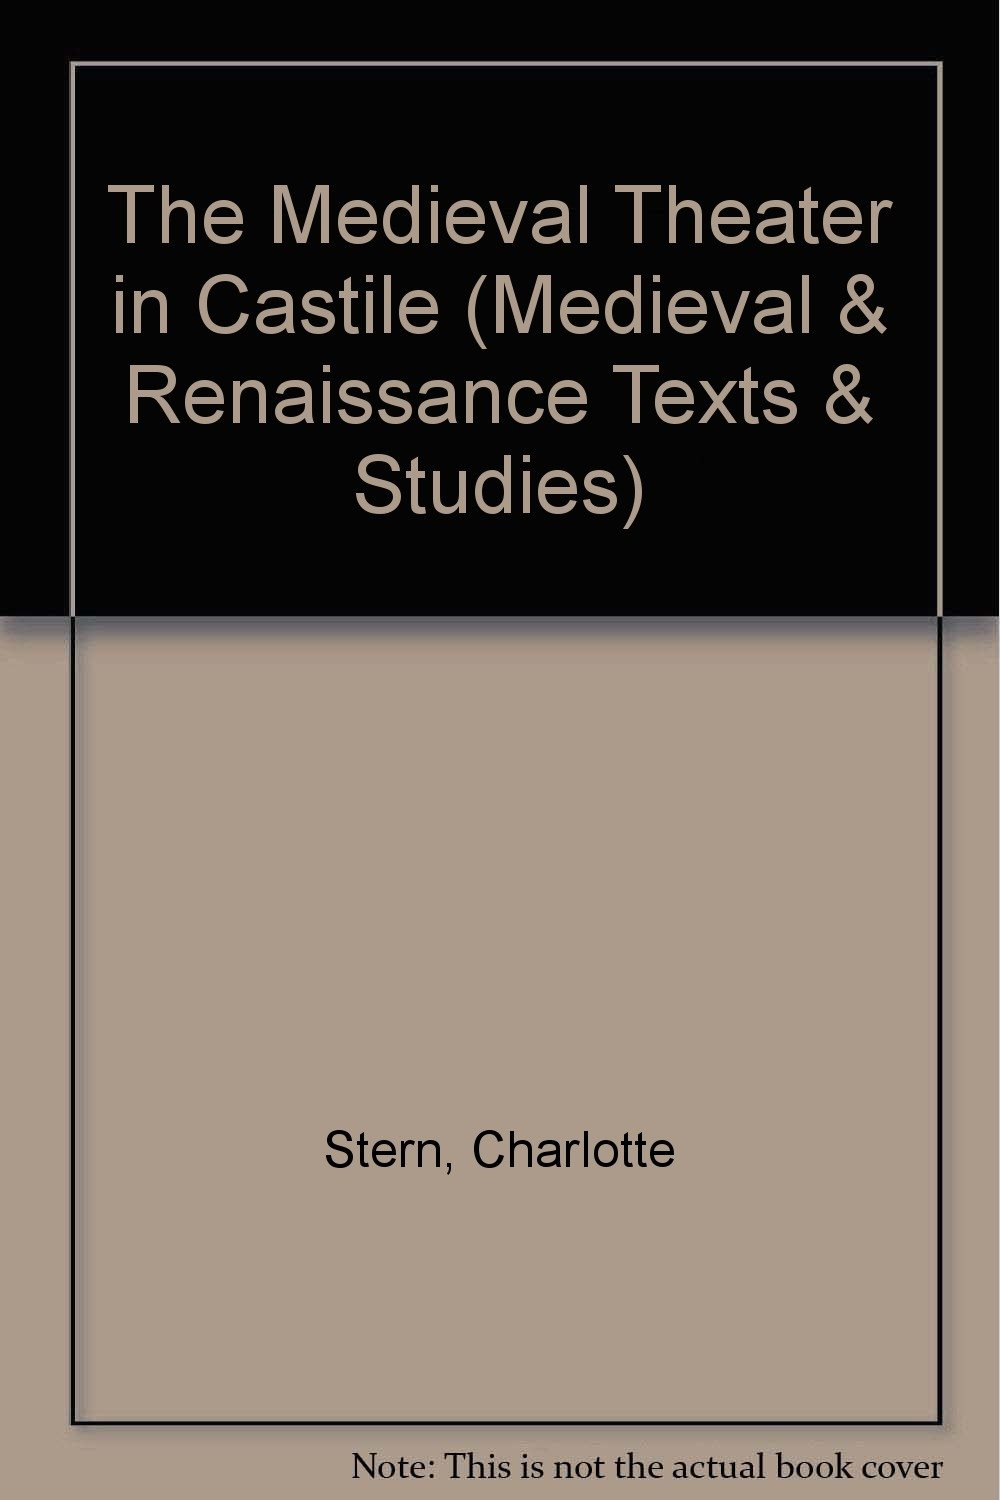 The Medieval Theater in Castile (Medieval and Renaissance Texts and Studies), Stern, Charlotte